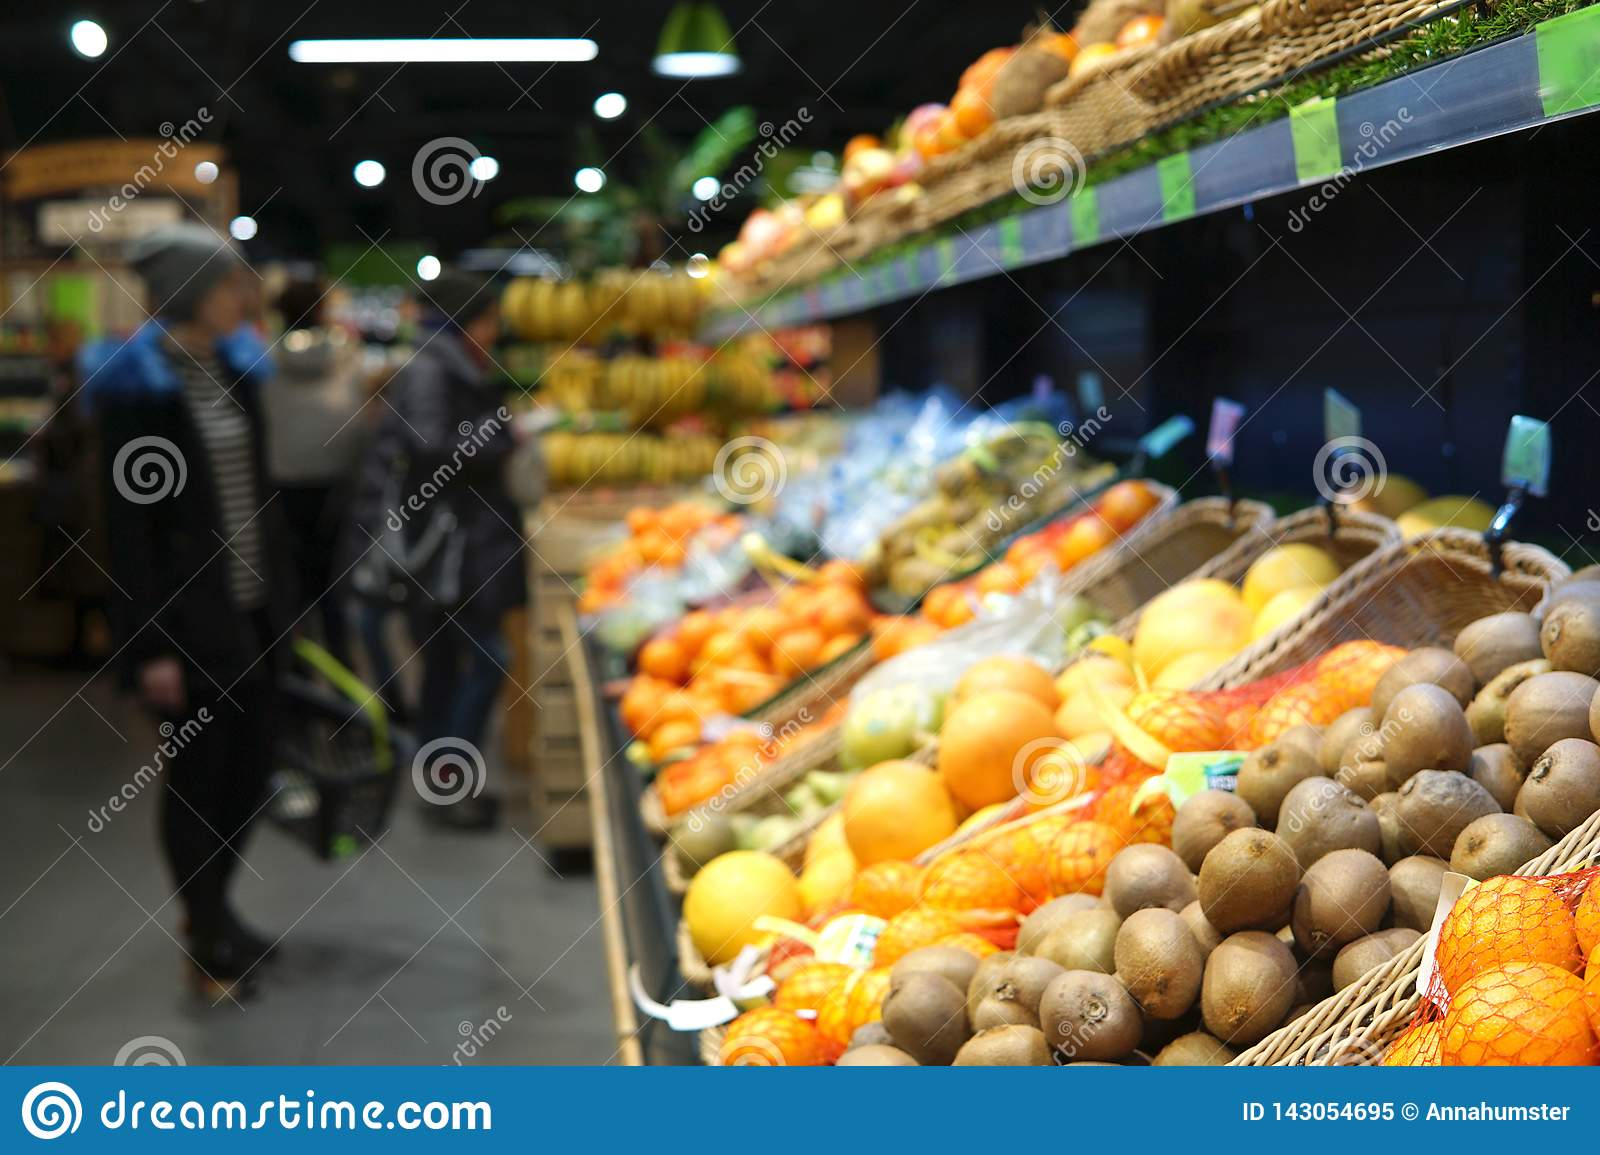 Fruits. Blurred image of supermarket.